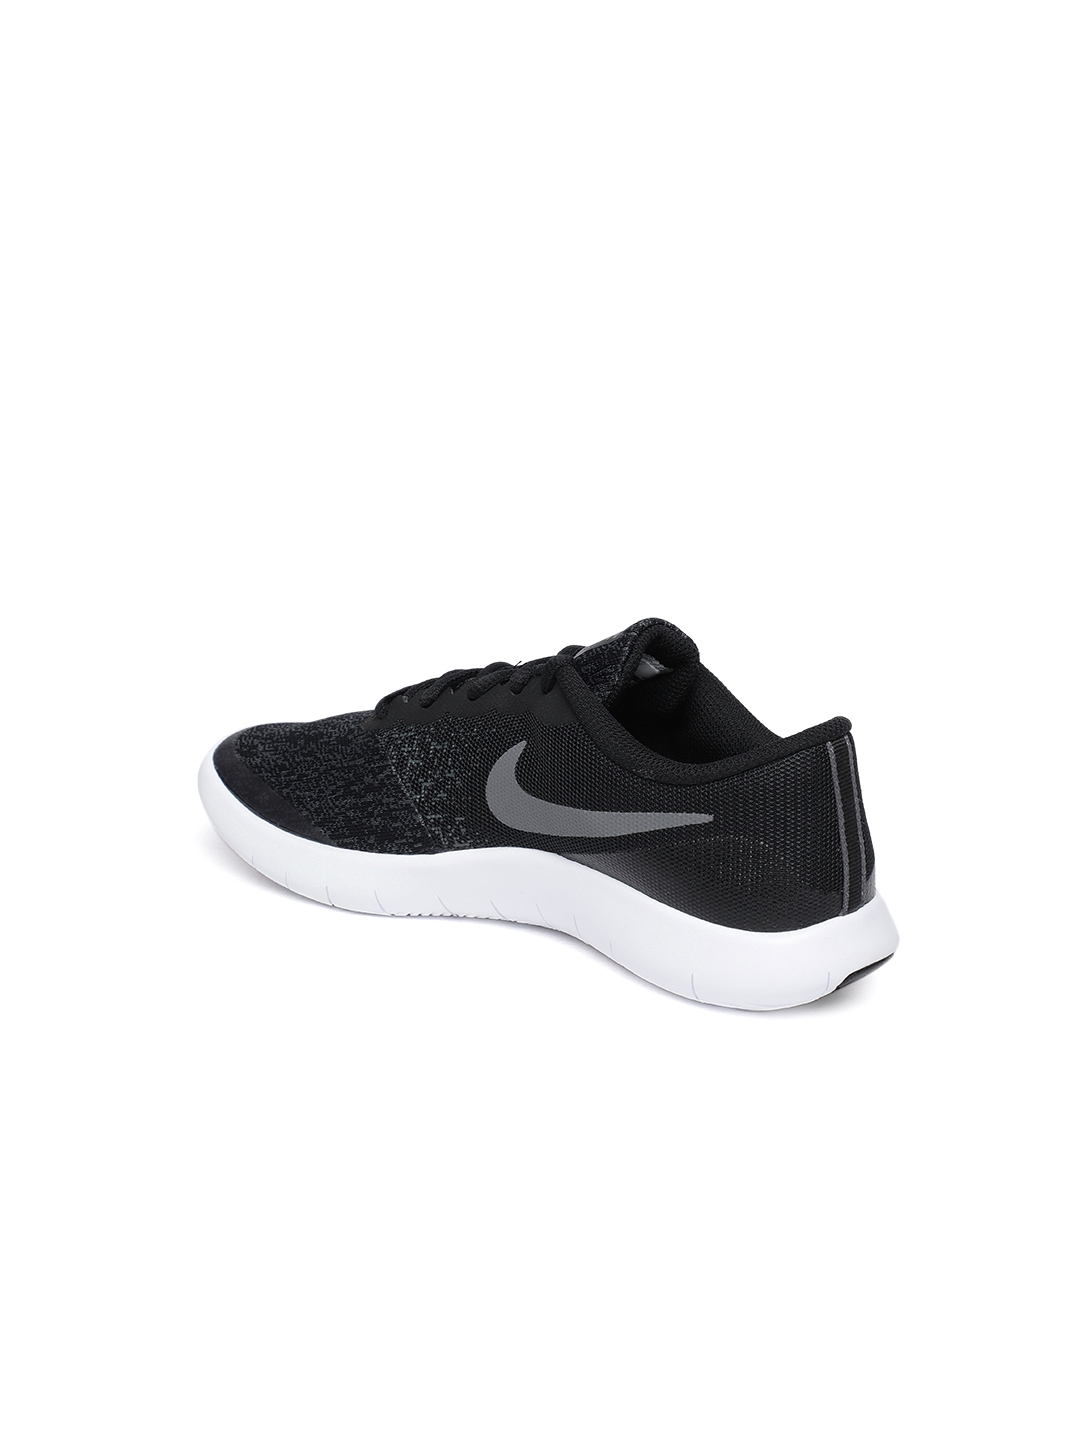 fce52bf99aba Buy Nike Boys Black Flex Contact (GS) Running Shoes - Sports Shoes ...